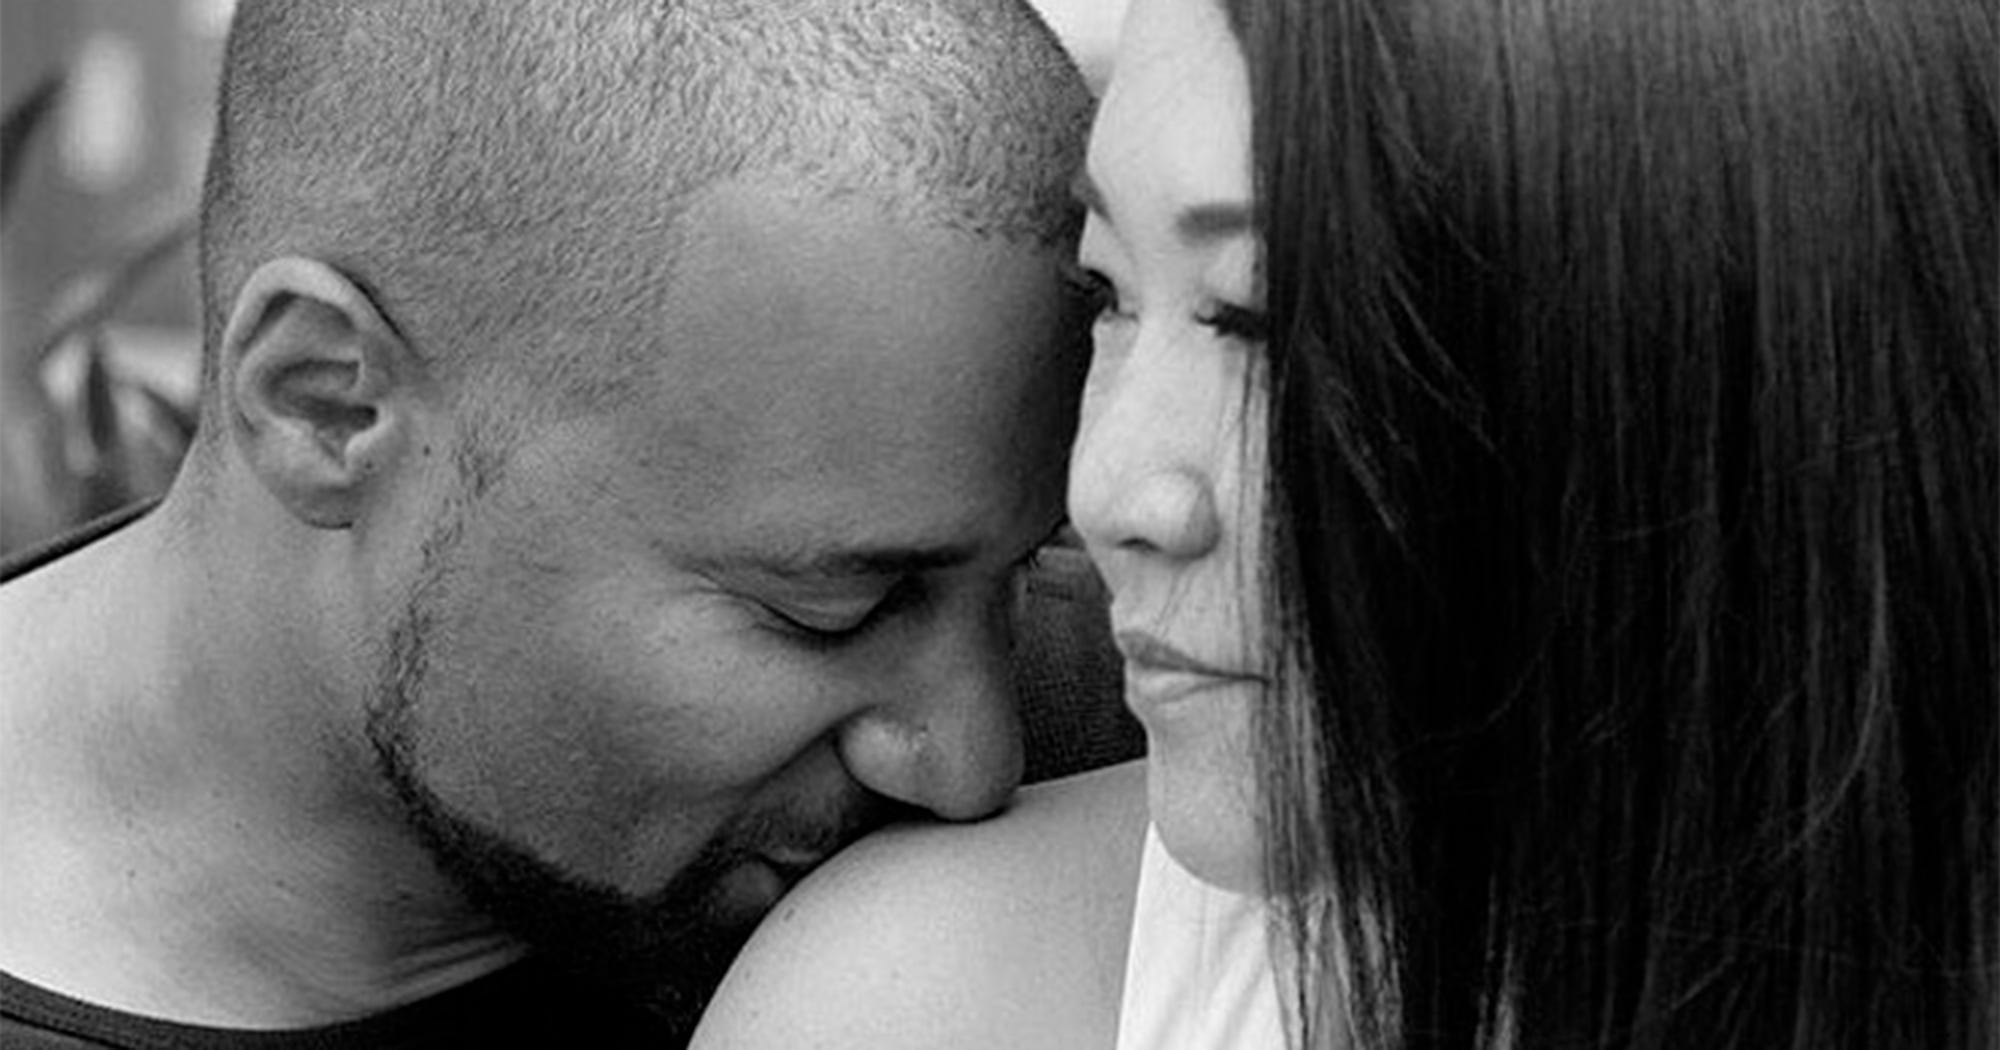 What It's Like To Find Love After An Abusive Relationship